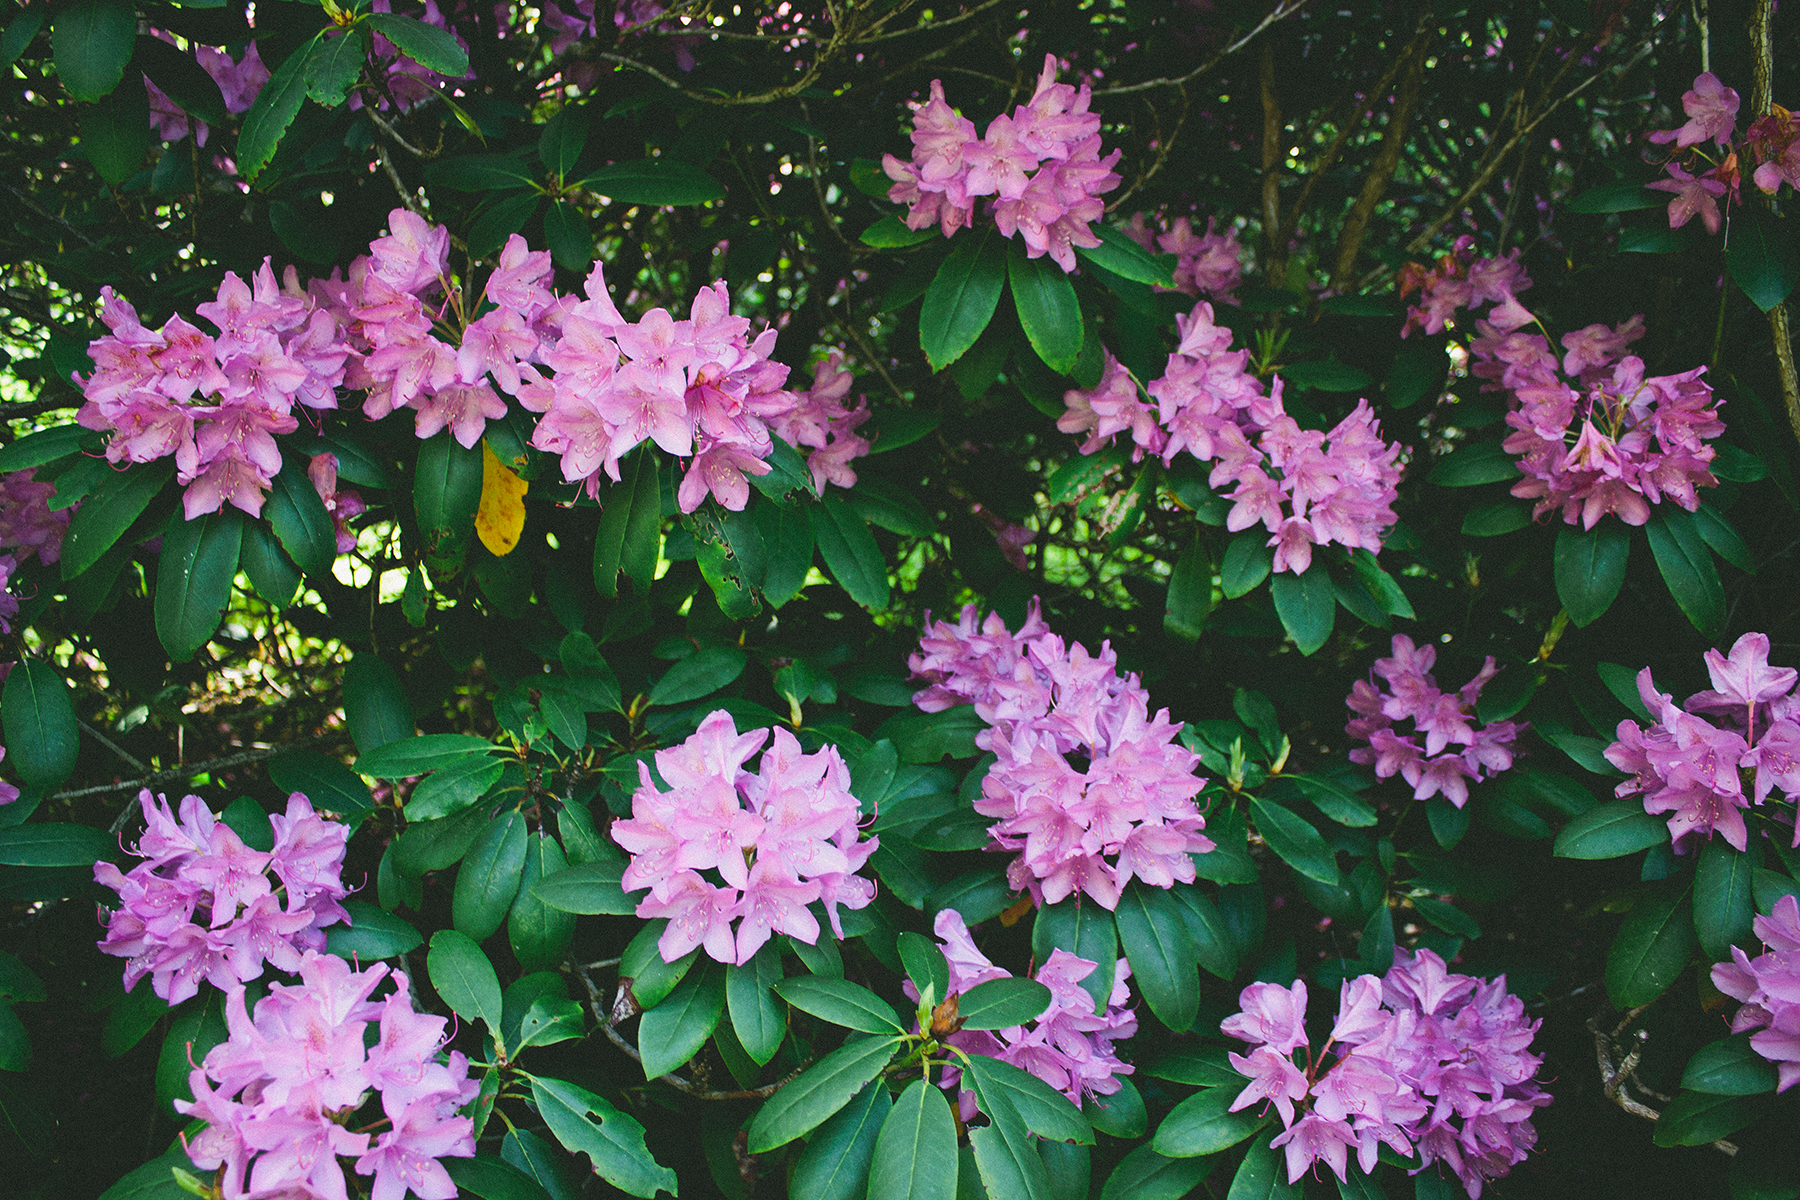 Catawba Rhododendrons